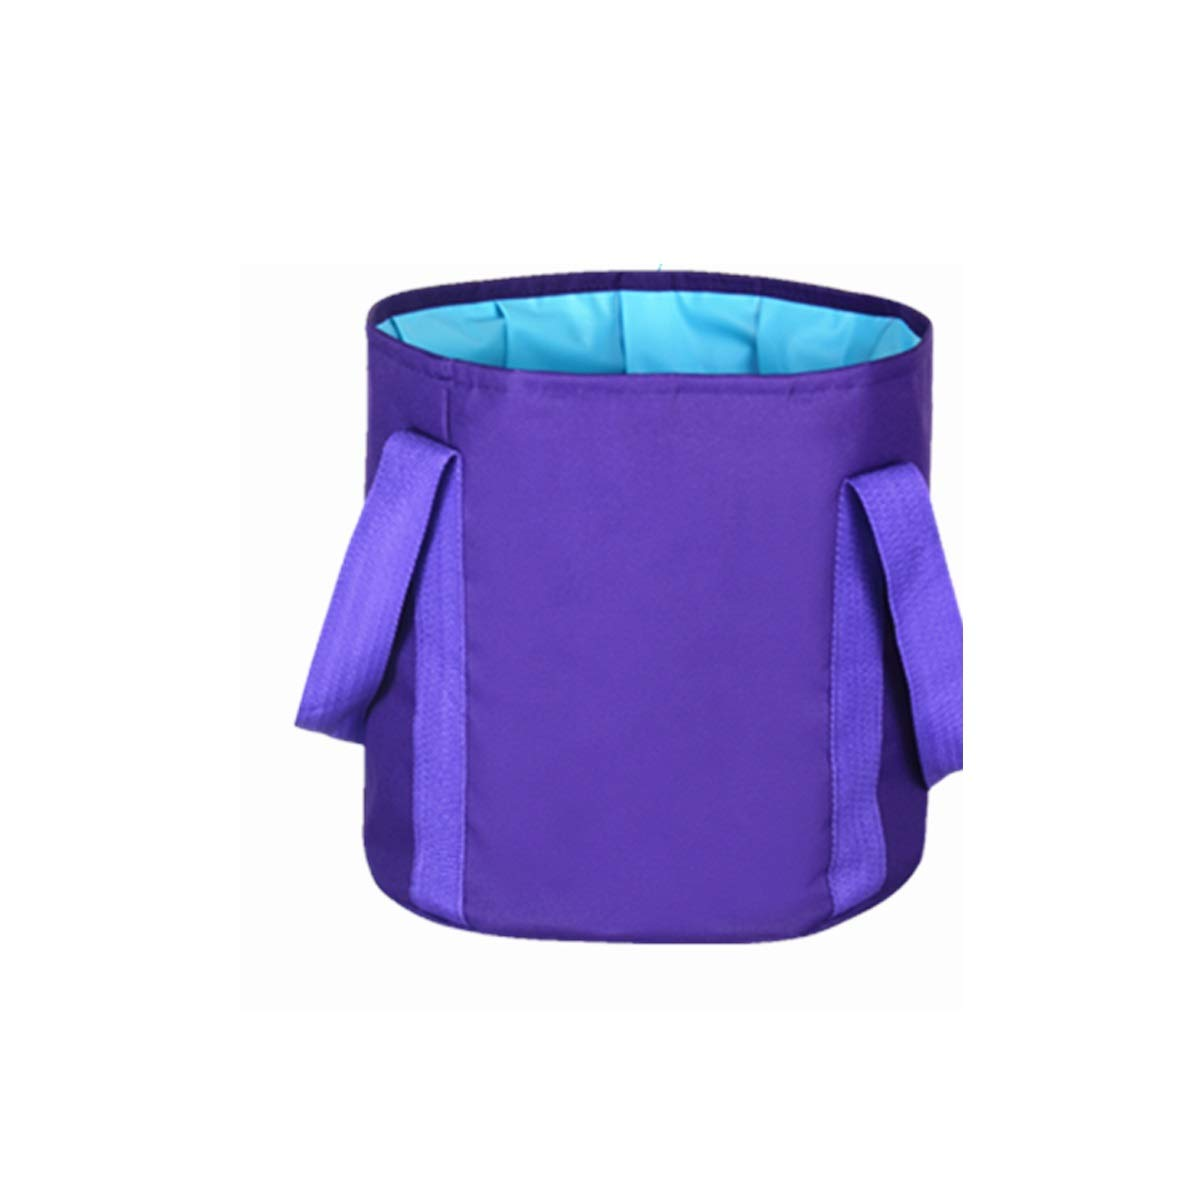 Muziwenju Portable Multifunctional Foldable Collapsible Outdoor Wash Basin Bucket for Camping Hiking Fishing Traveling with Carrying Pouch (Color : 25L-Style 2)